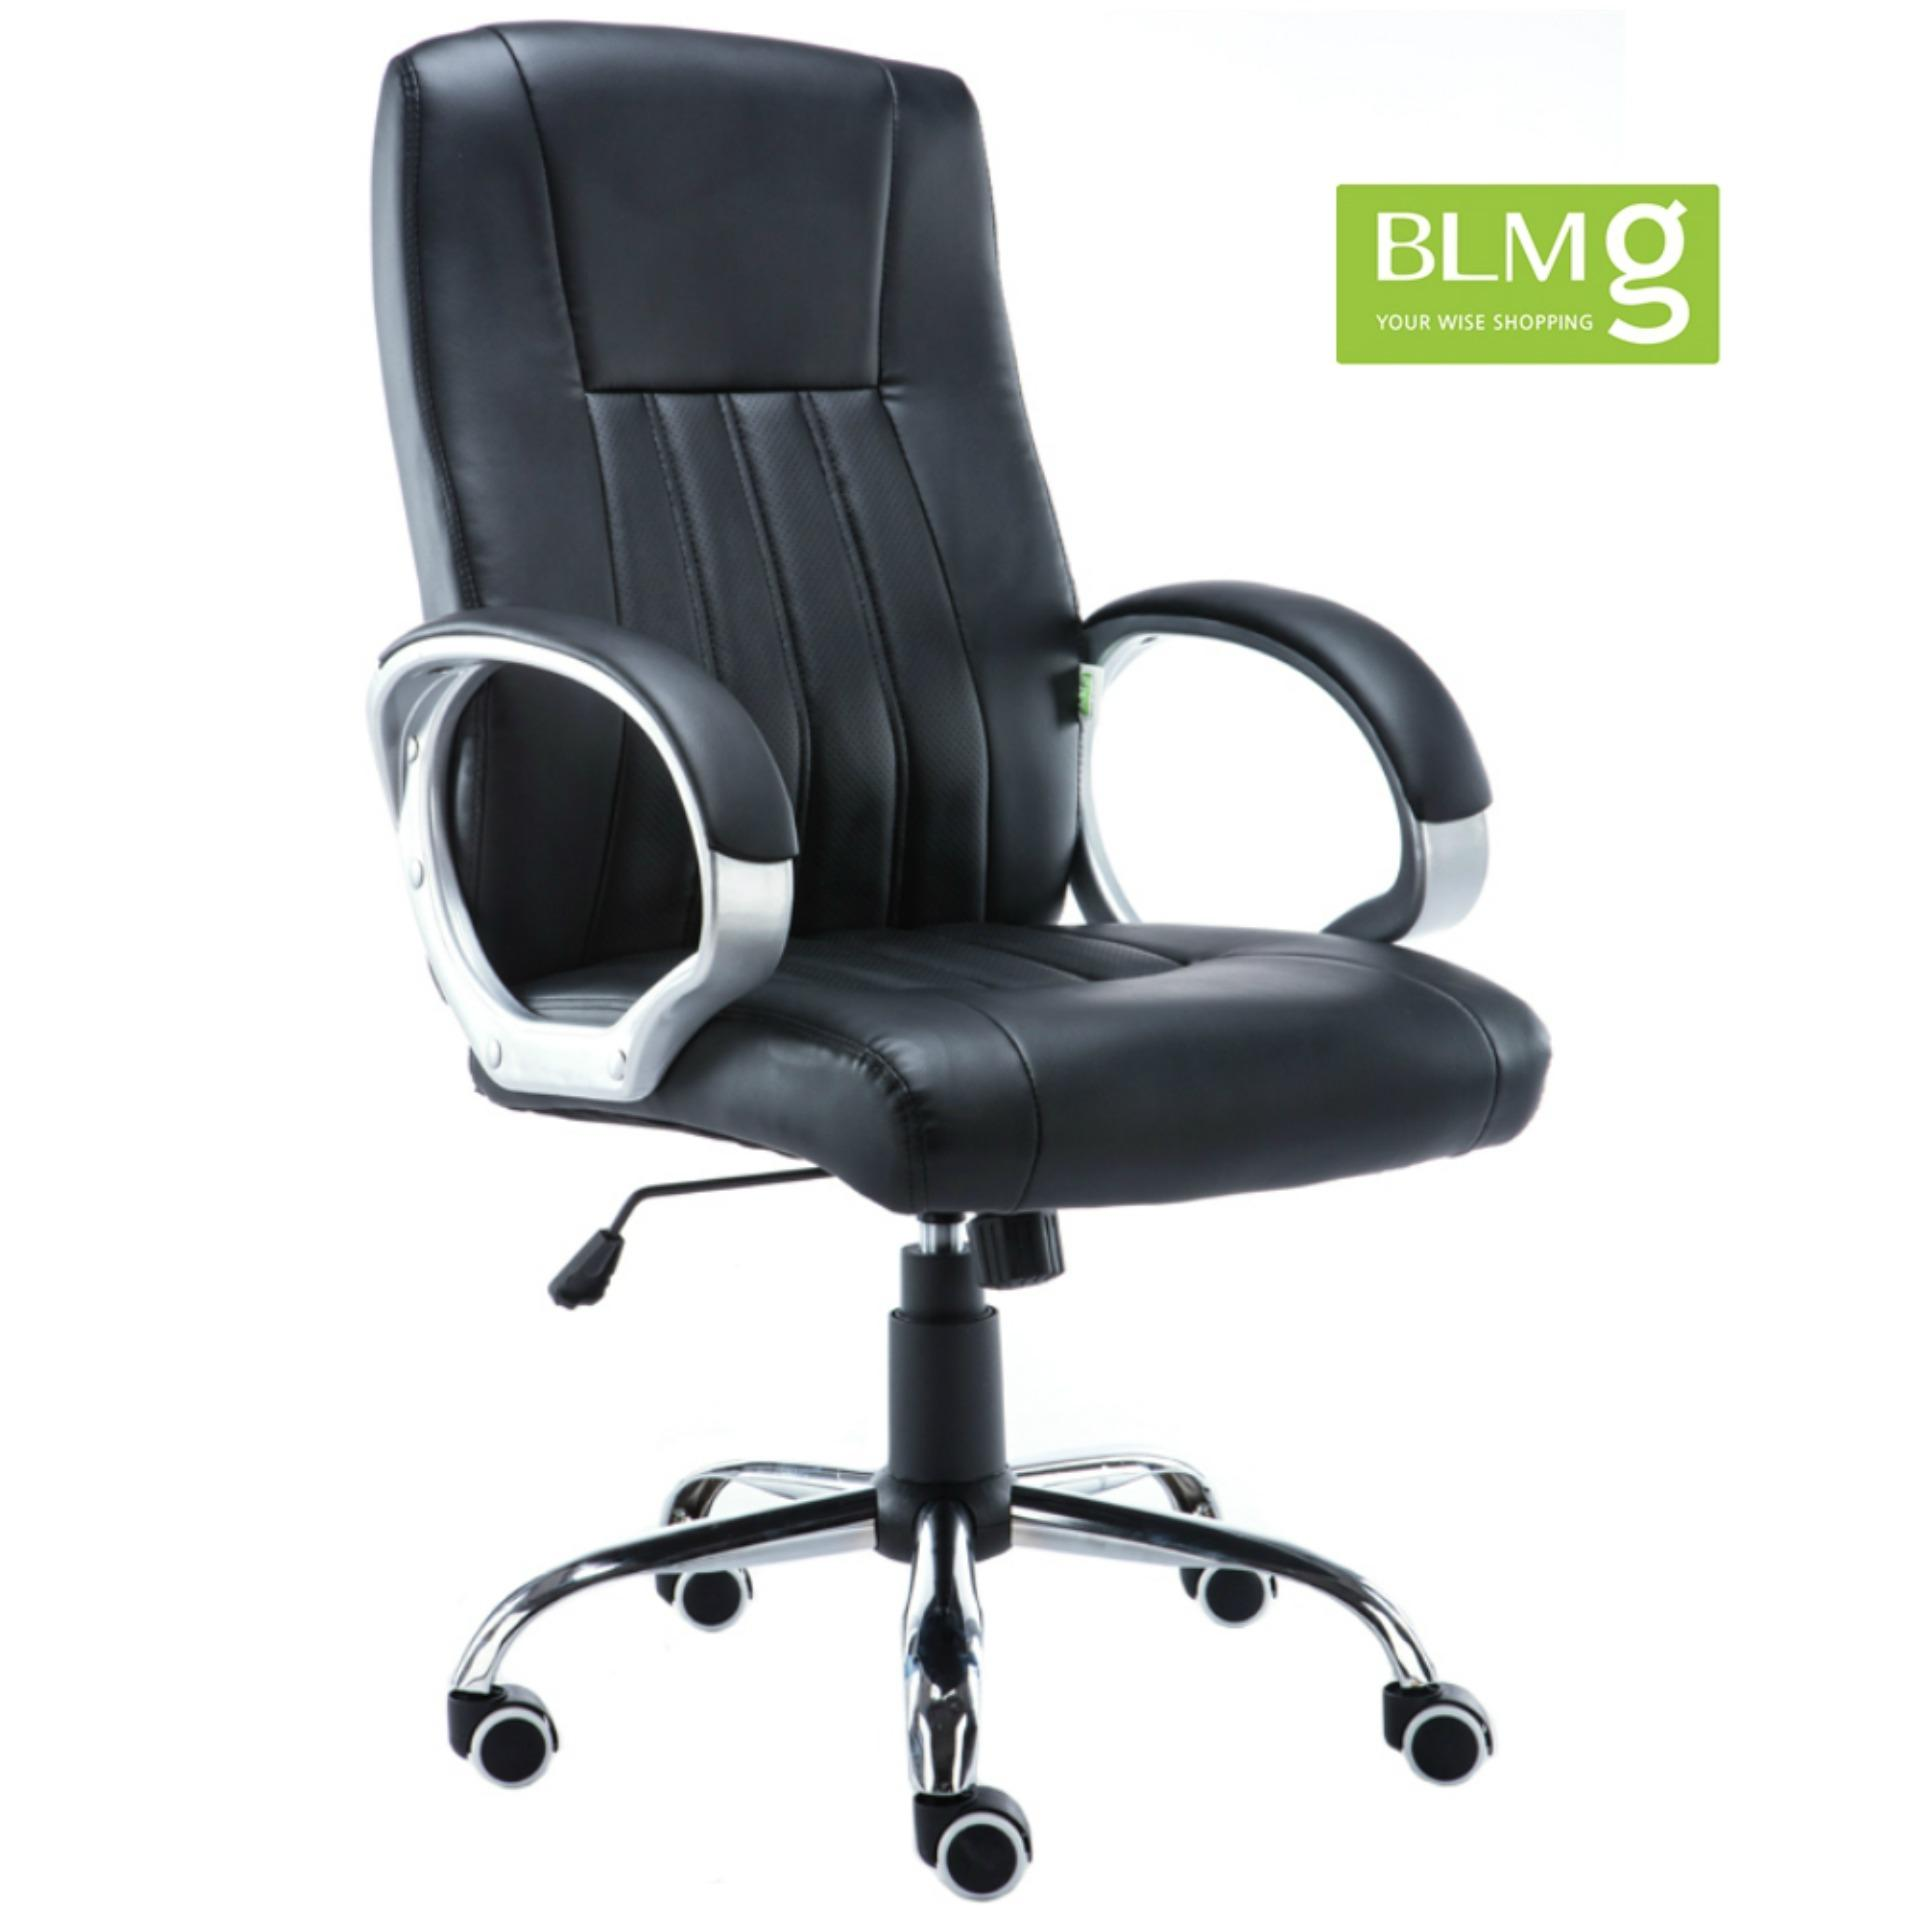 Blmg Office Leatherette Chair B100 Black On Singapore